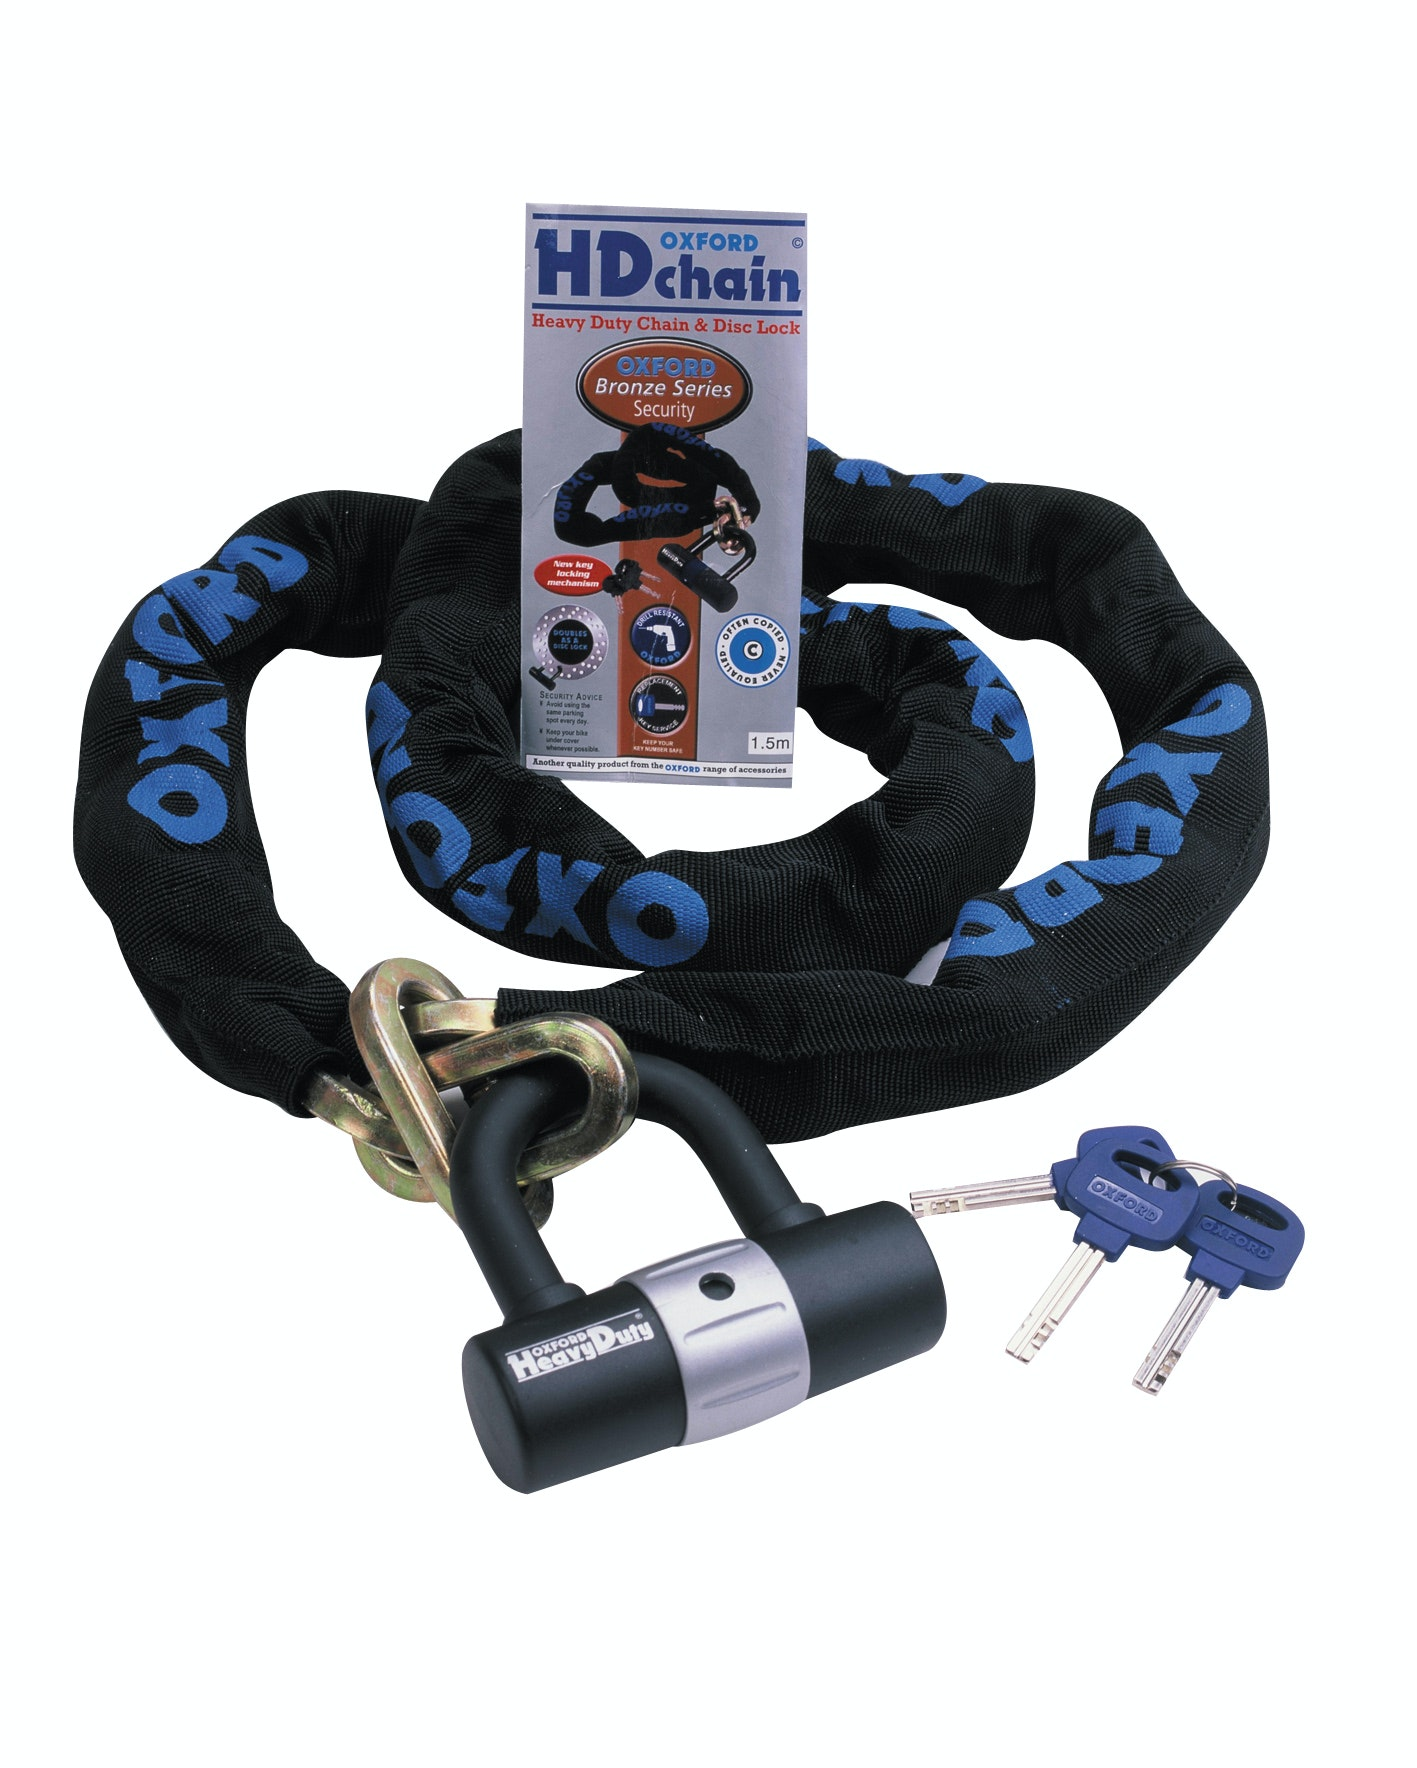 Stay Secure with this Oxford HD Chain sweepstakes